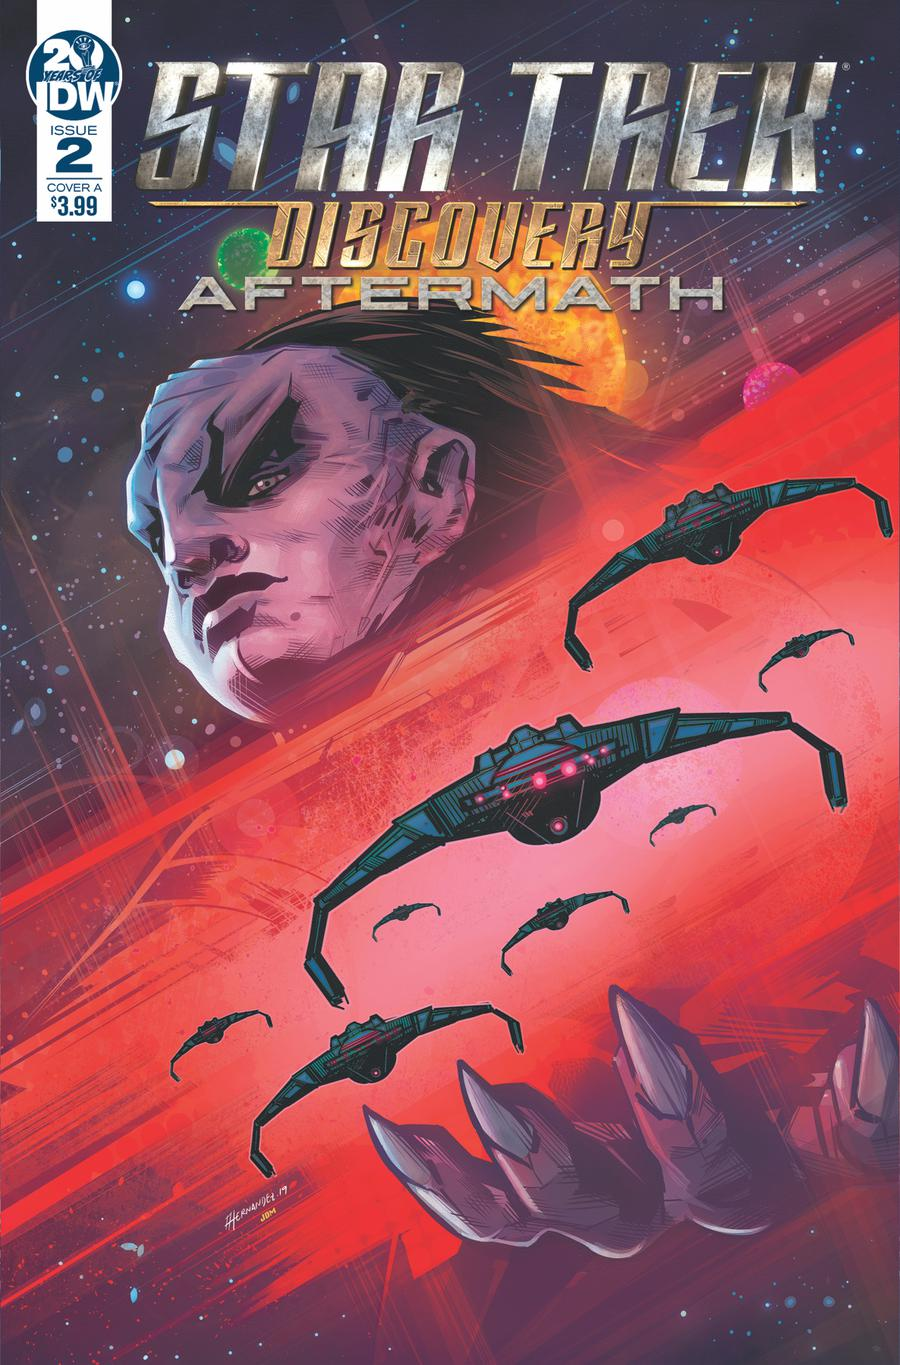 Star Trek Discovery Aftermath #2 Cover A Regular Angel Hernandez Cover